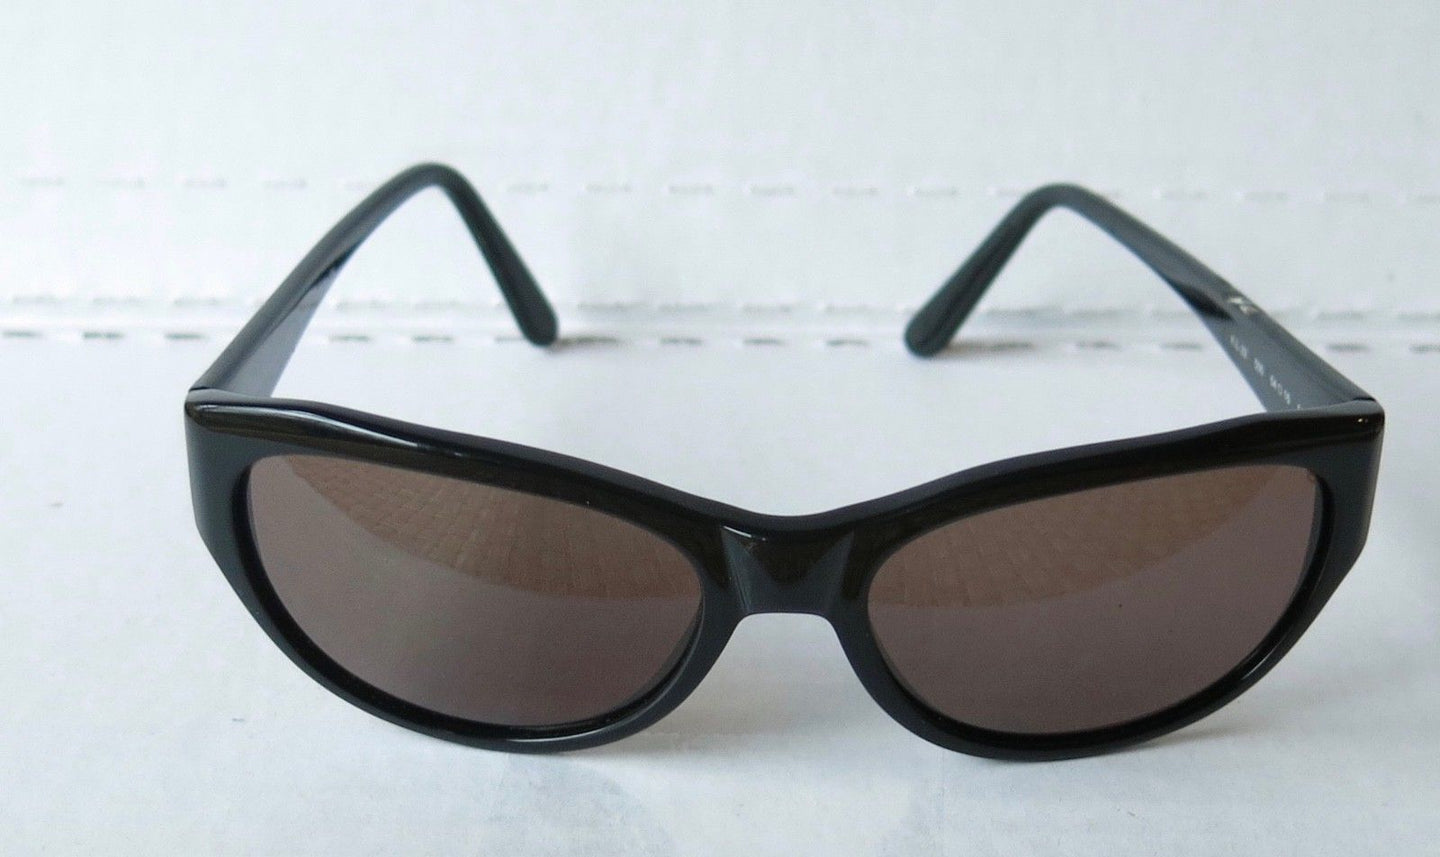 Killer Loop Sunglasses The K 22-500 - Friedman & Sons